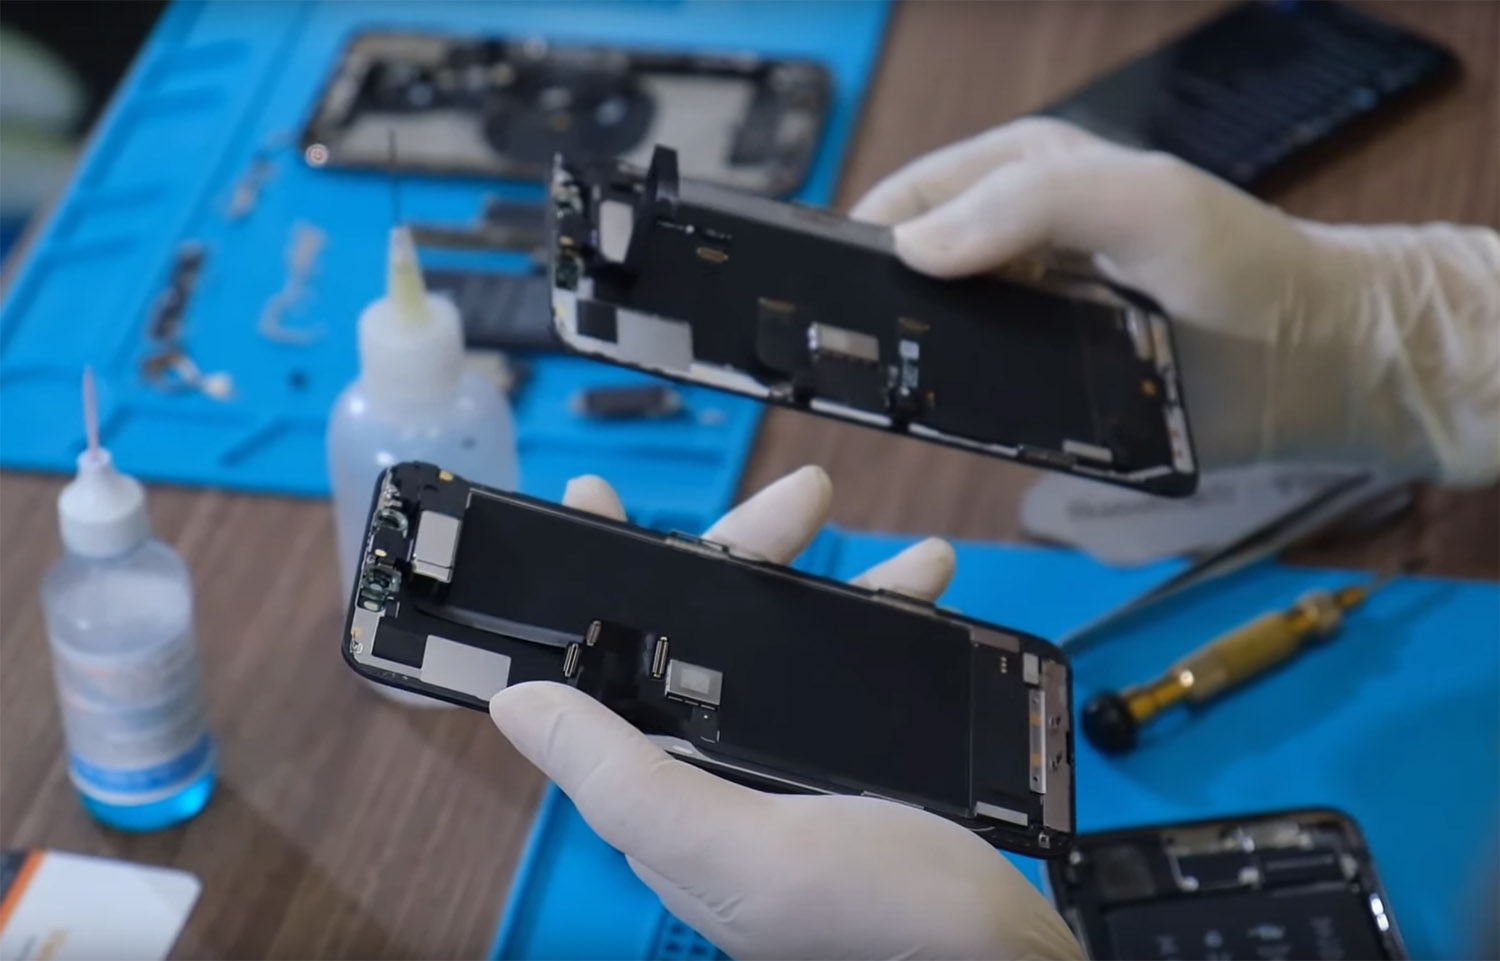 iPhone-11-Pro-Max-teardown.jpg